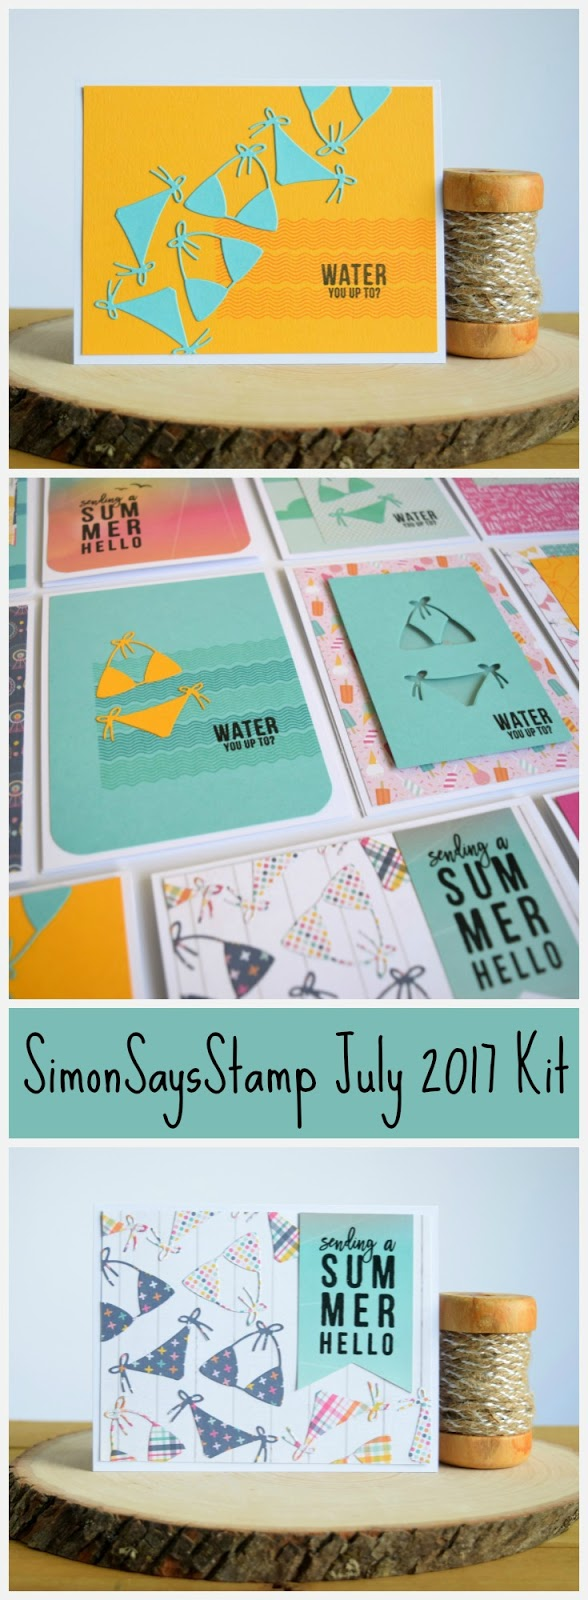 Summer Card by Jess Crafts featuring Simon Says Stamp July 2017 Kit #simonsaysstamp #echoparkpaper